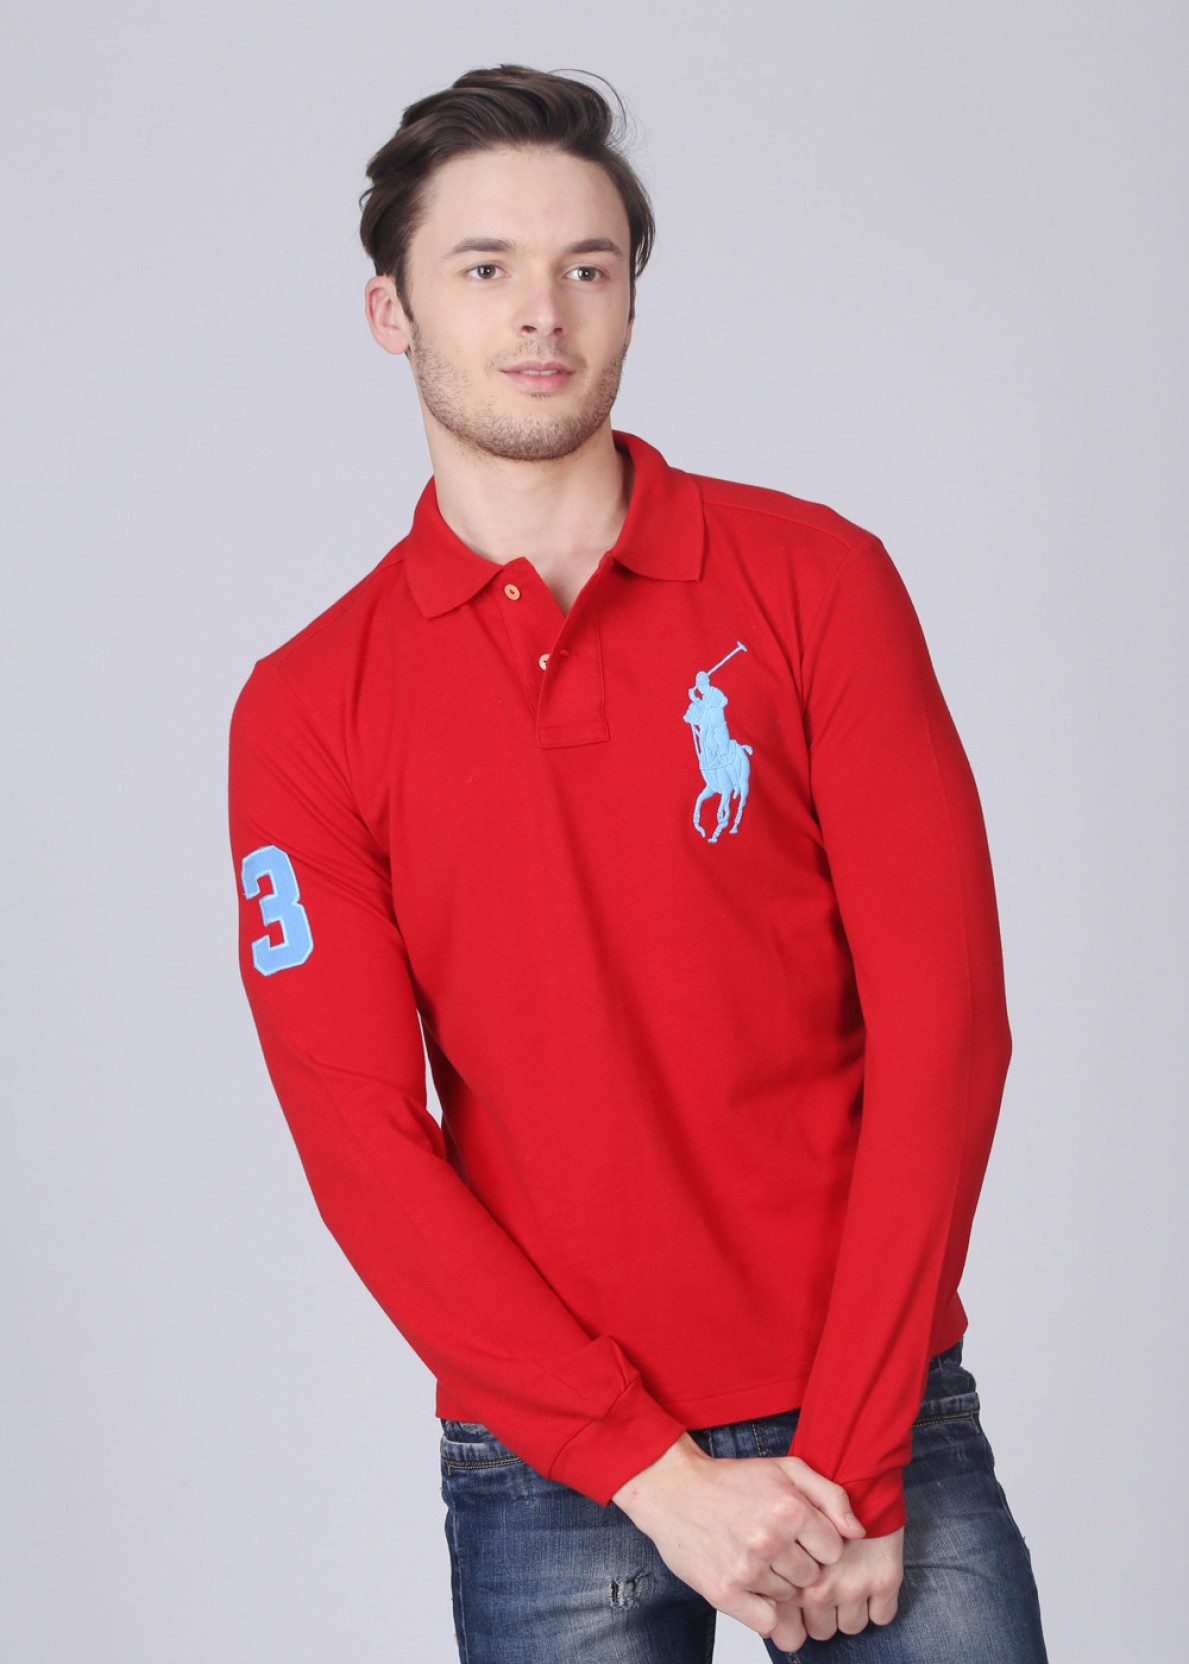 1f486a6f2 ... low price polo ralph lauren solid mens polo neck red t shirt. share  551d8 307b7